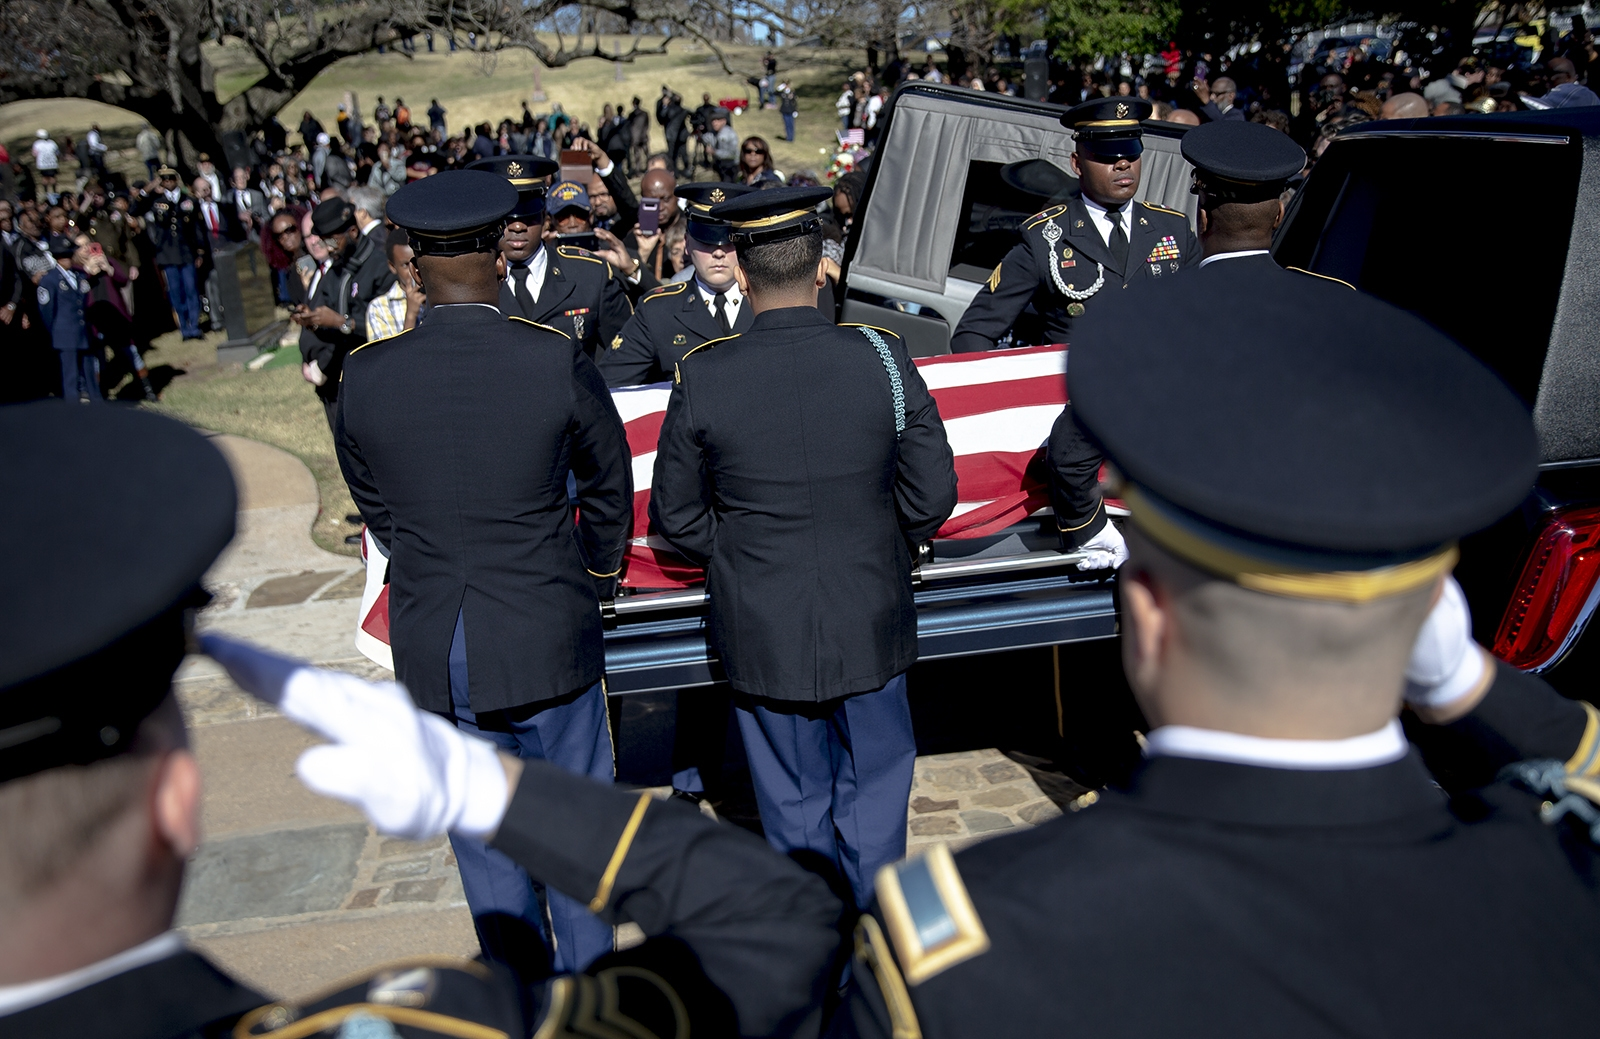 Members of an honor guard removes the casket of WWII veteran Richard Overton from a hearse during a burial ceremony at the Texas State Cemetery on Saturday, Jan. 12, 2019, in Austin, Texas. Overton, the nation's oldest World War II veteran who at 112 was believed to be the oldest living man in the U.S., was remembered for his love of country and joy for life. (Nick Wagner/Austin American-Statesman via AP)